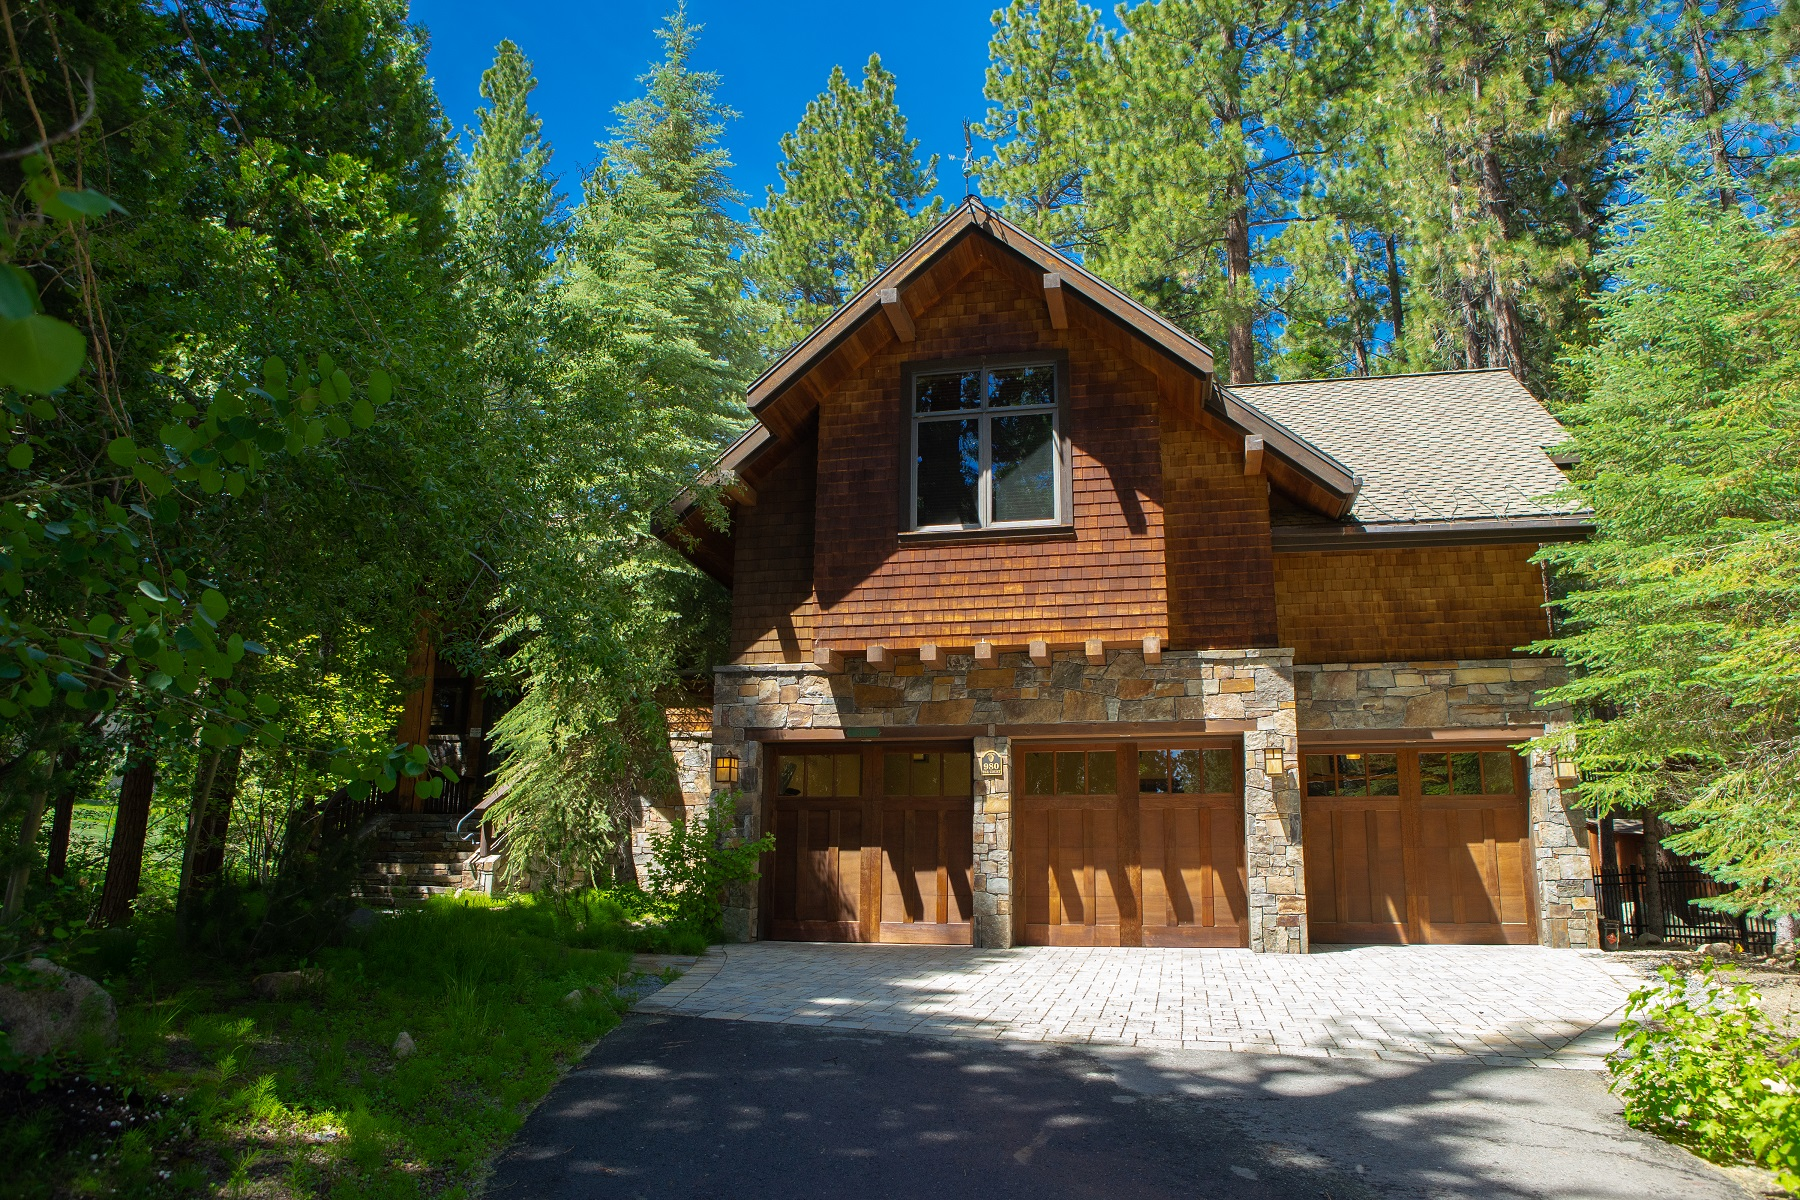 Single Family Homes for Active at 980 Tee Court, Incline Village, NV 980 Tee Court Incline Village, Nevada 89451 United States